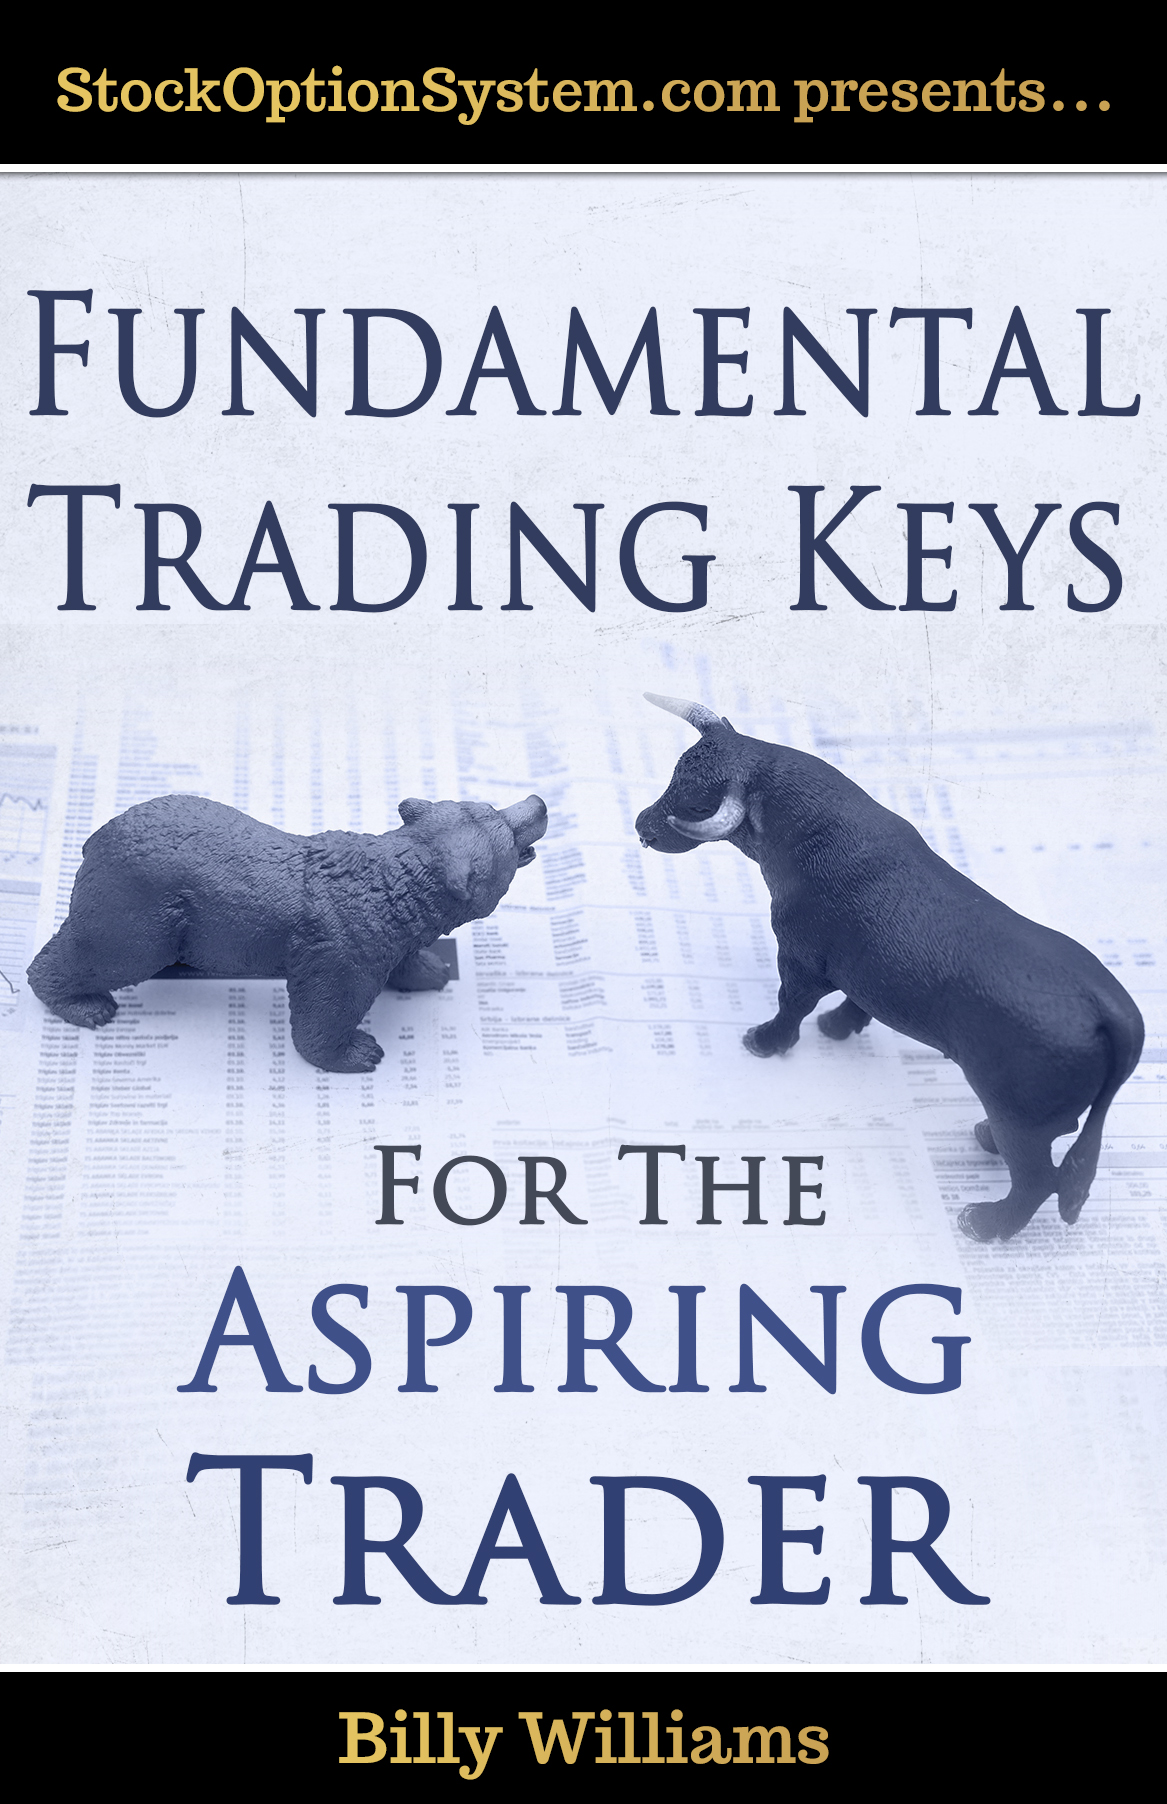 Fundamental Trading Keys For The Aspiring Trader